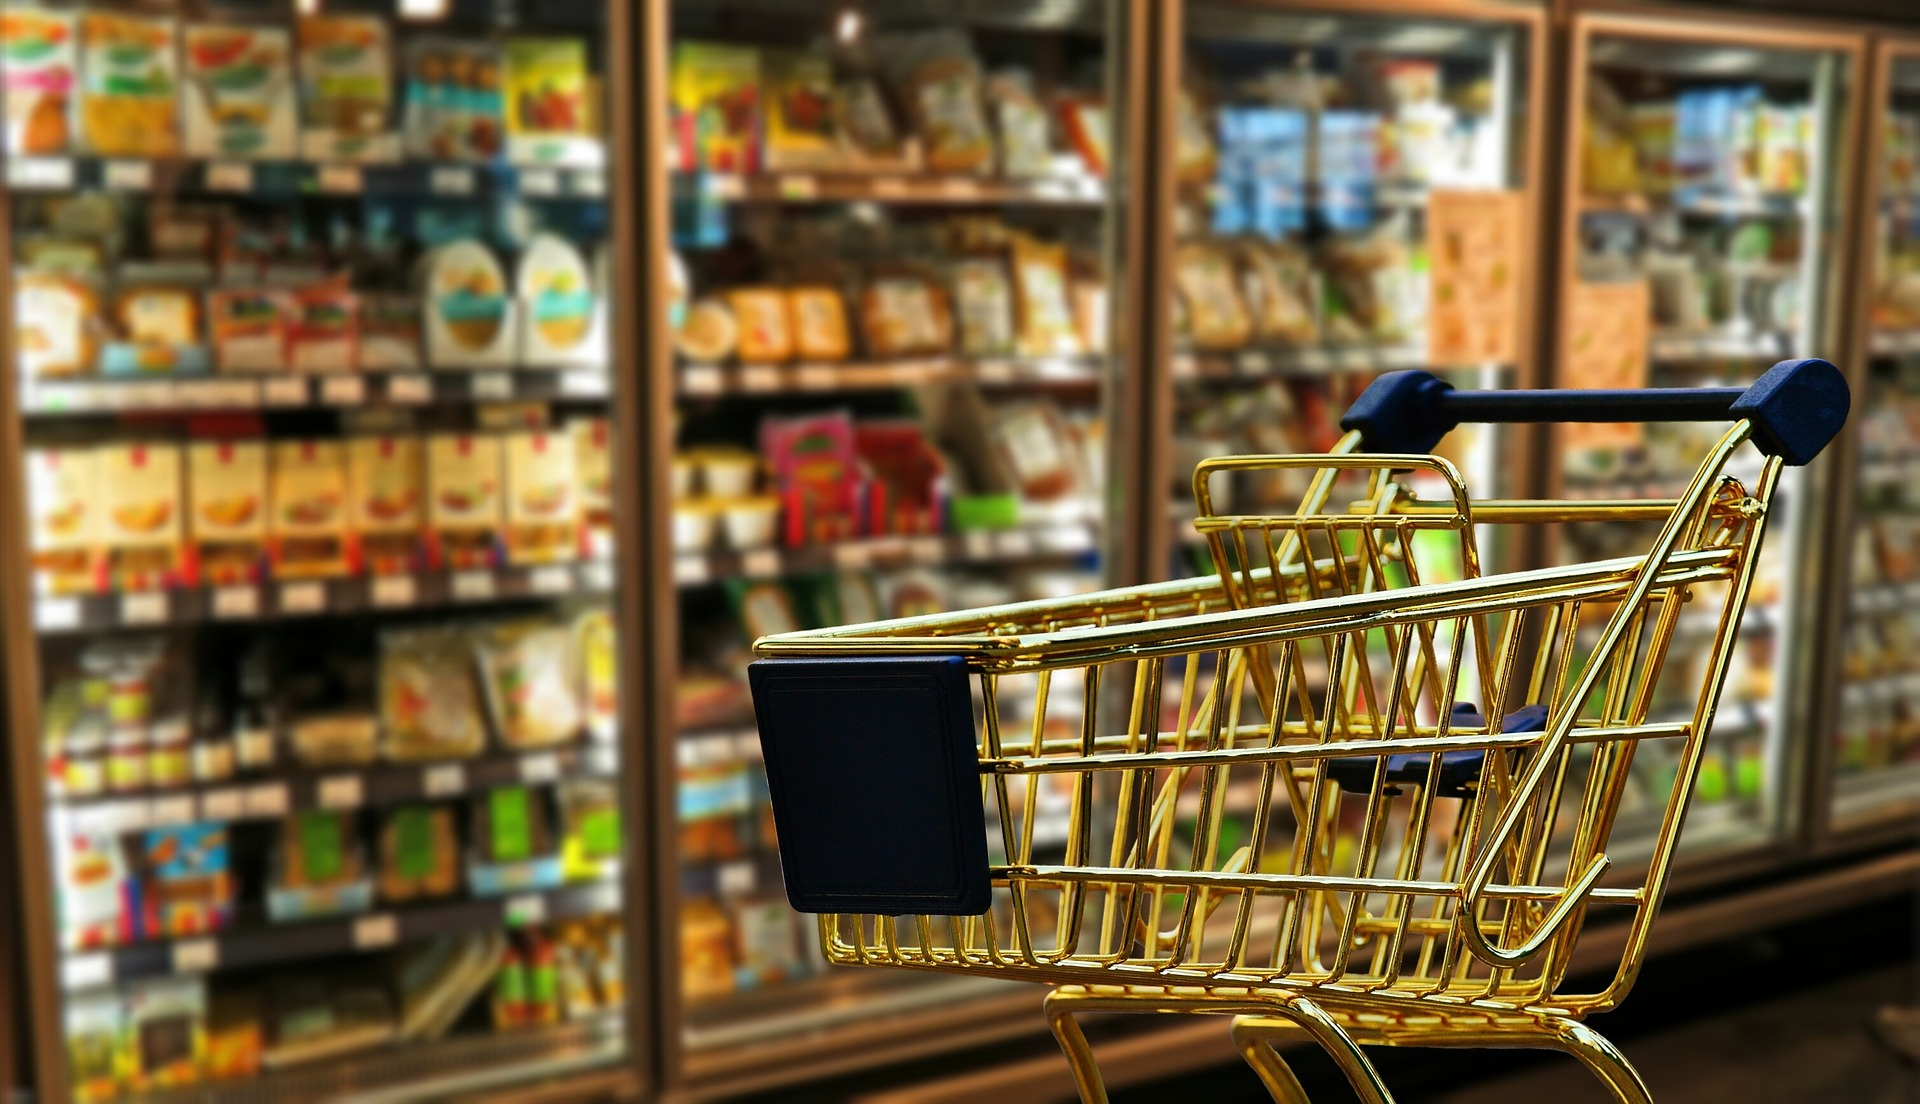 The Untold Story of Shelf Life